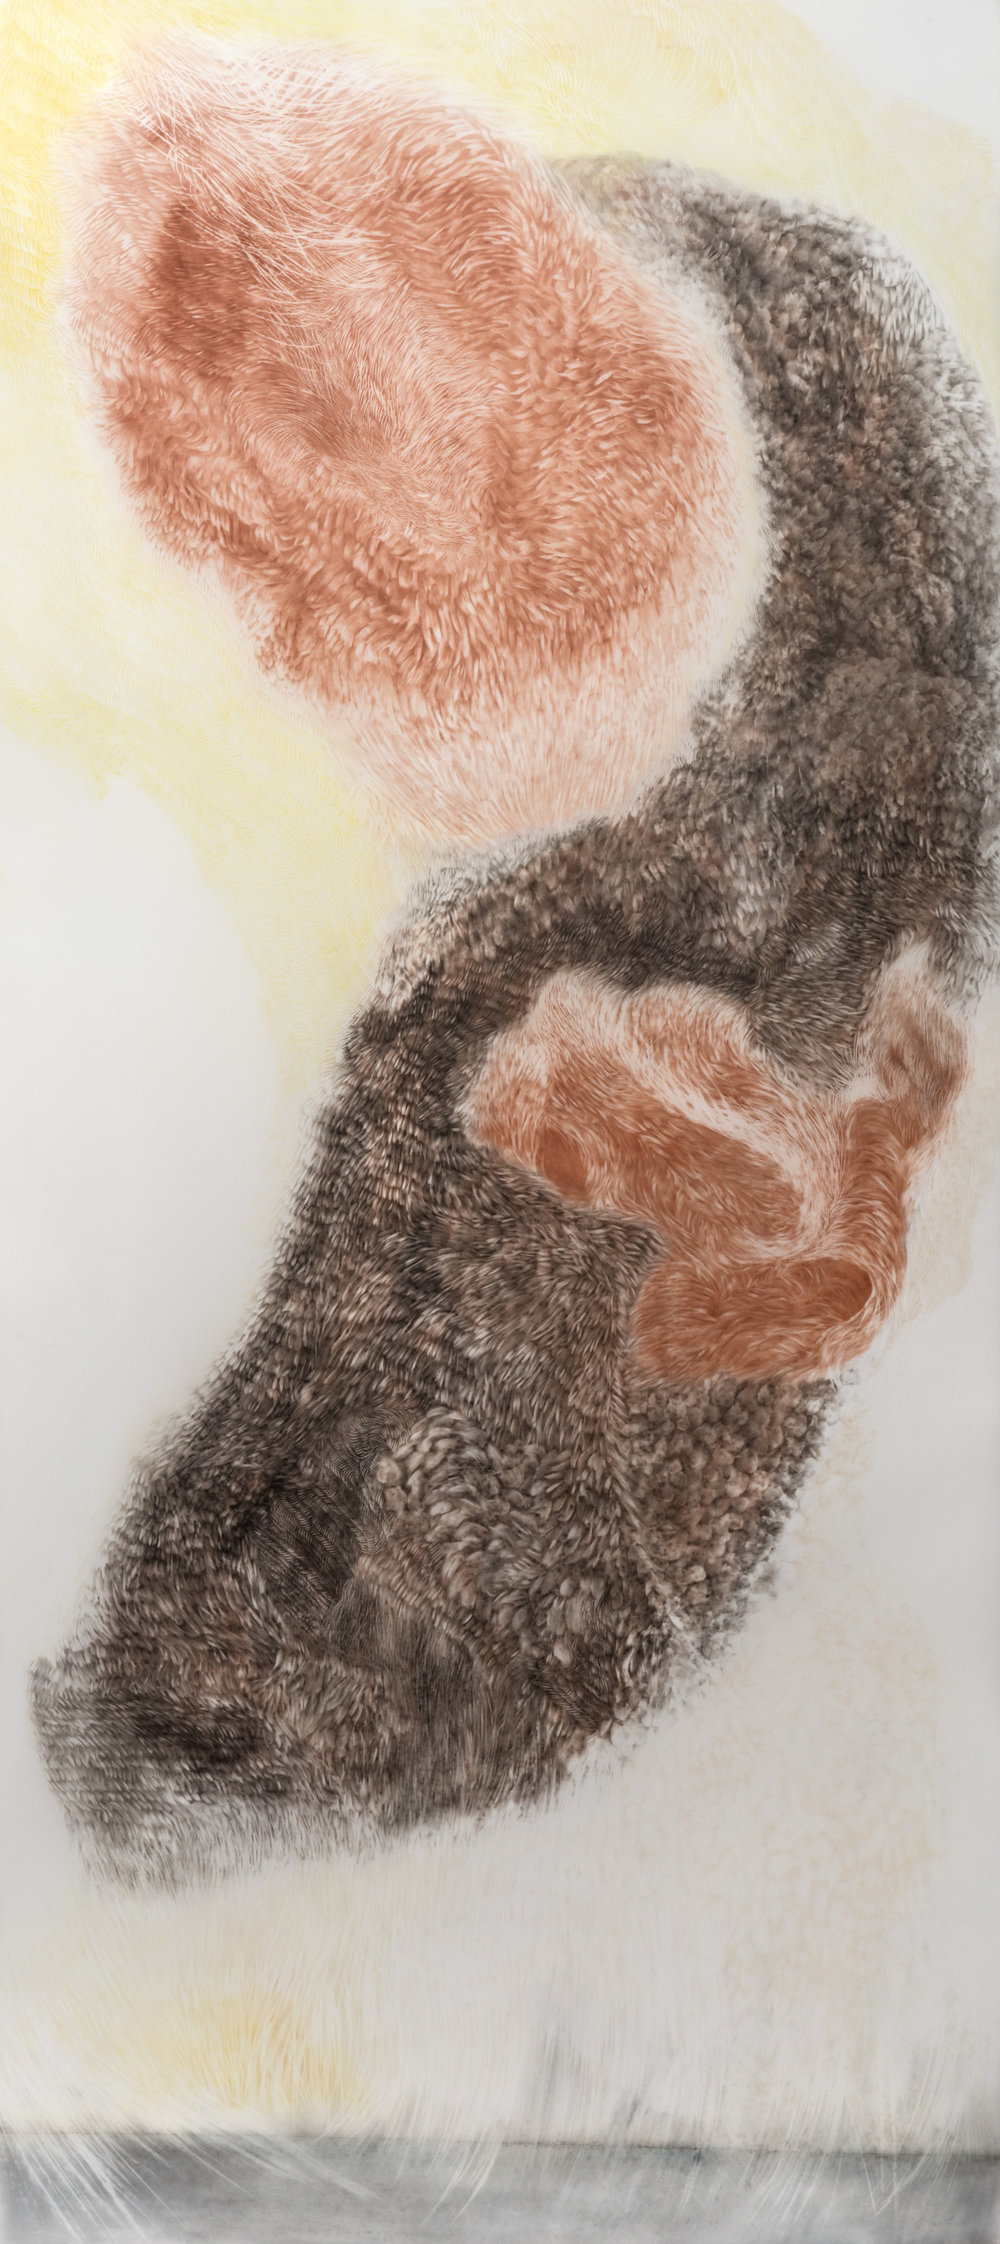 Observed and Recorded Permutation of the Holy Spirit IX (34 inches x 79 inches-pastel erasing on dura-lar)